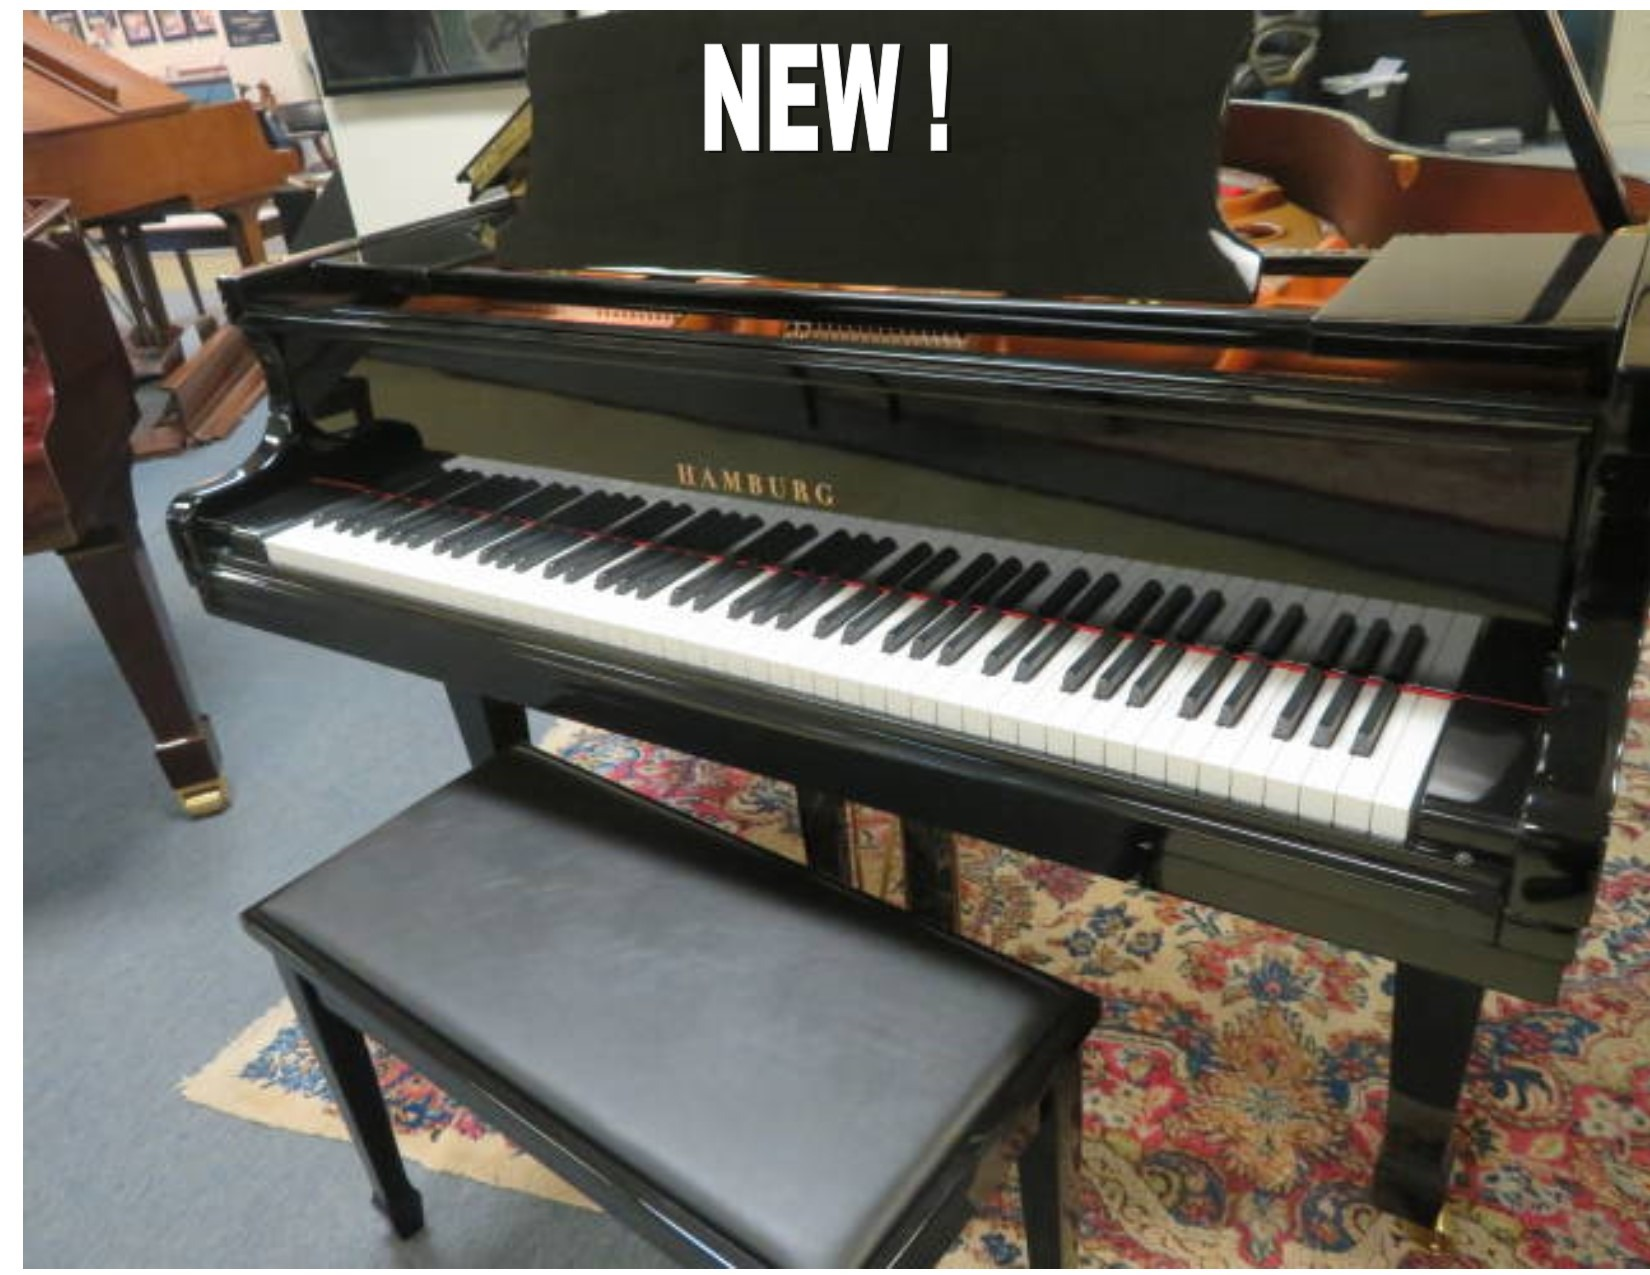 "12656-<br><font color=black><b>NEW HAMBURG</b></font> 6'2″ GRAND PIANO -""BEST KEPT SECRET IN THE PIANO BUSINESS"" GERMAN WIDE TAIL DESIGN, EUROPEAN SOUND!"